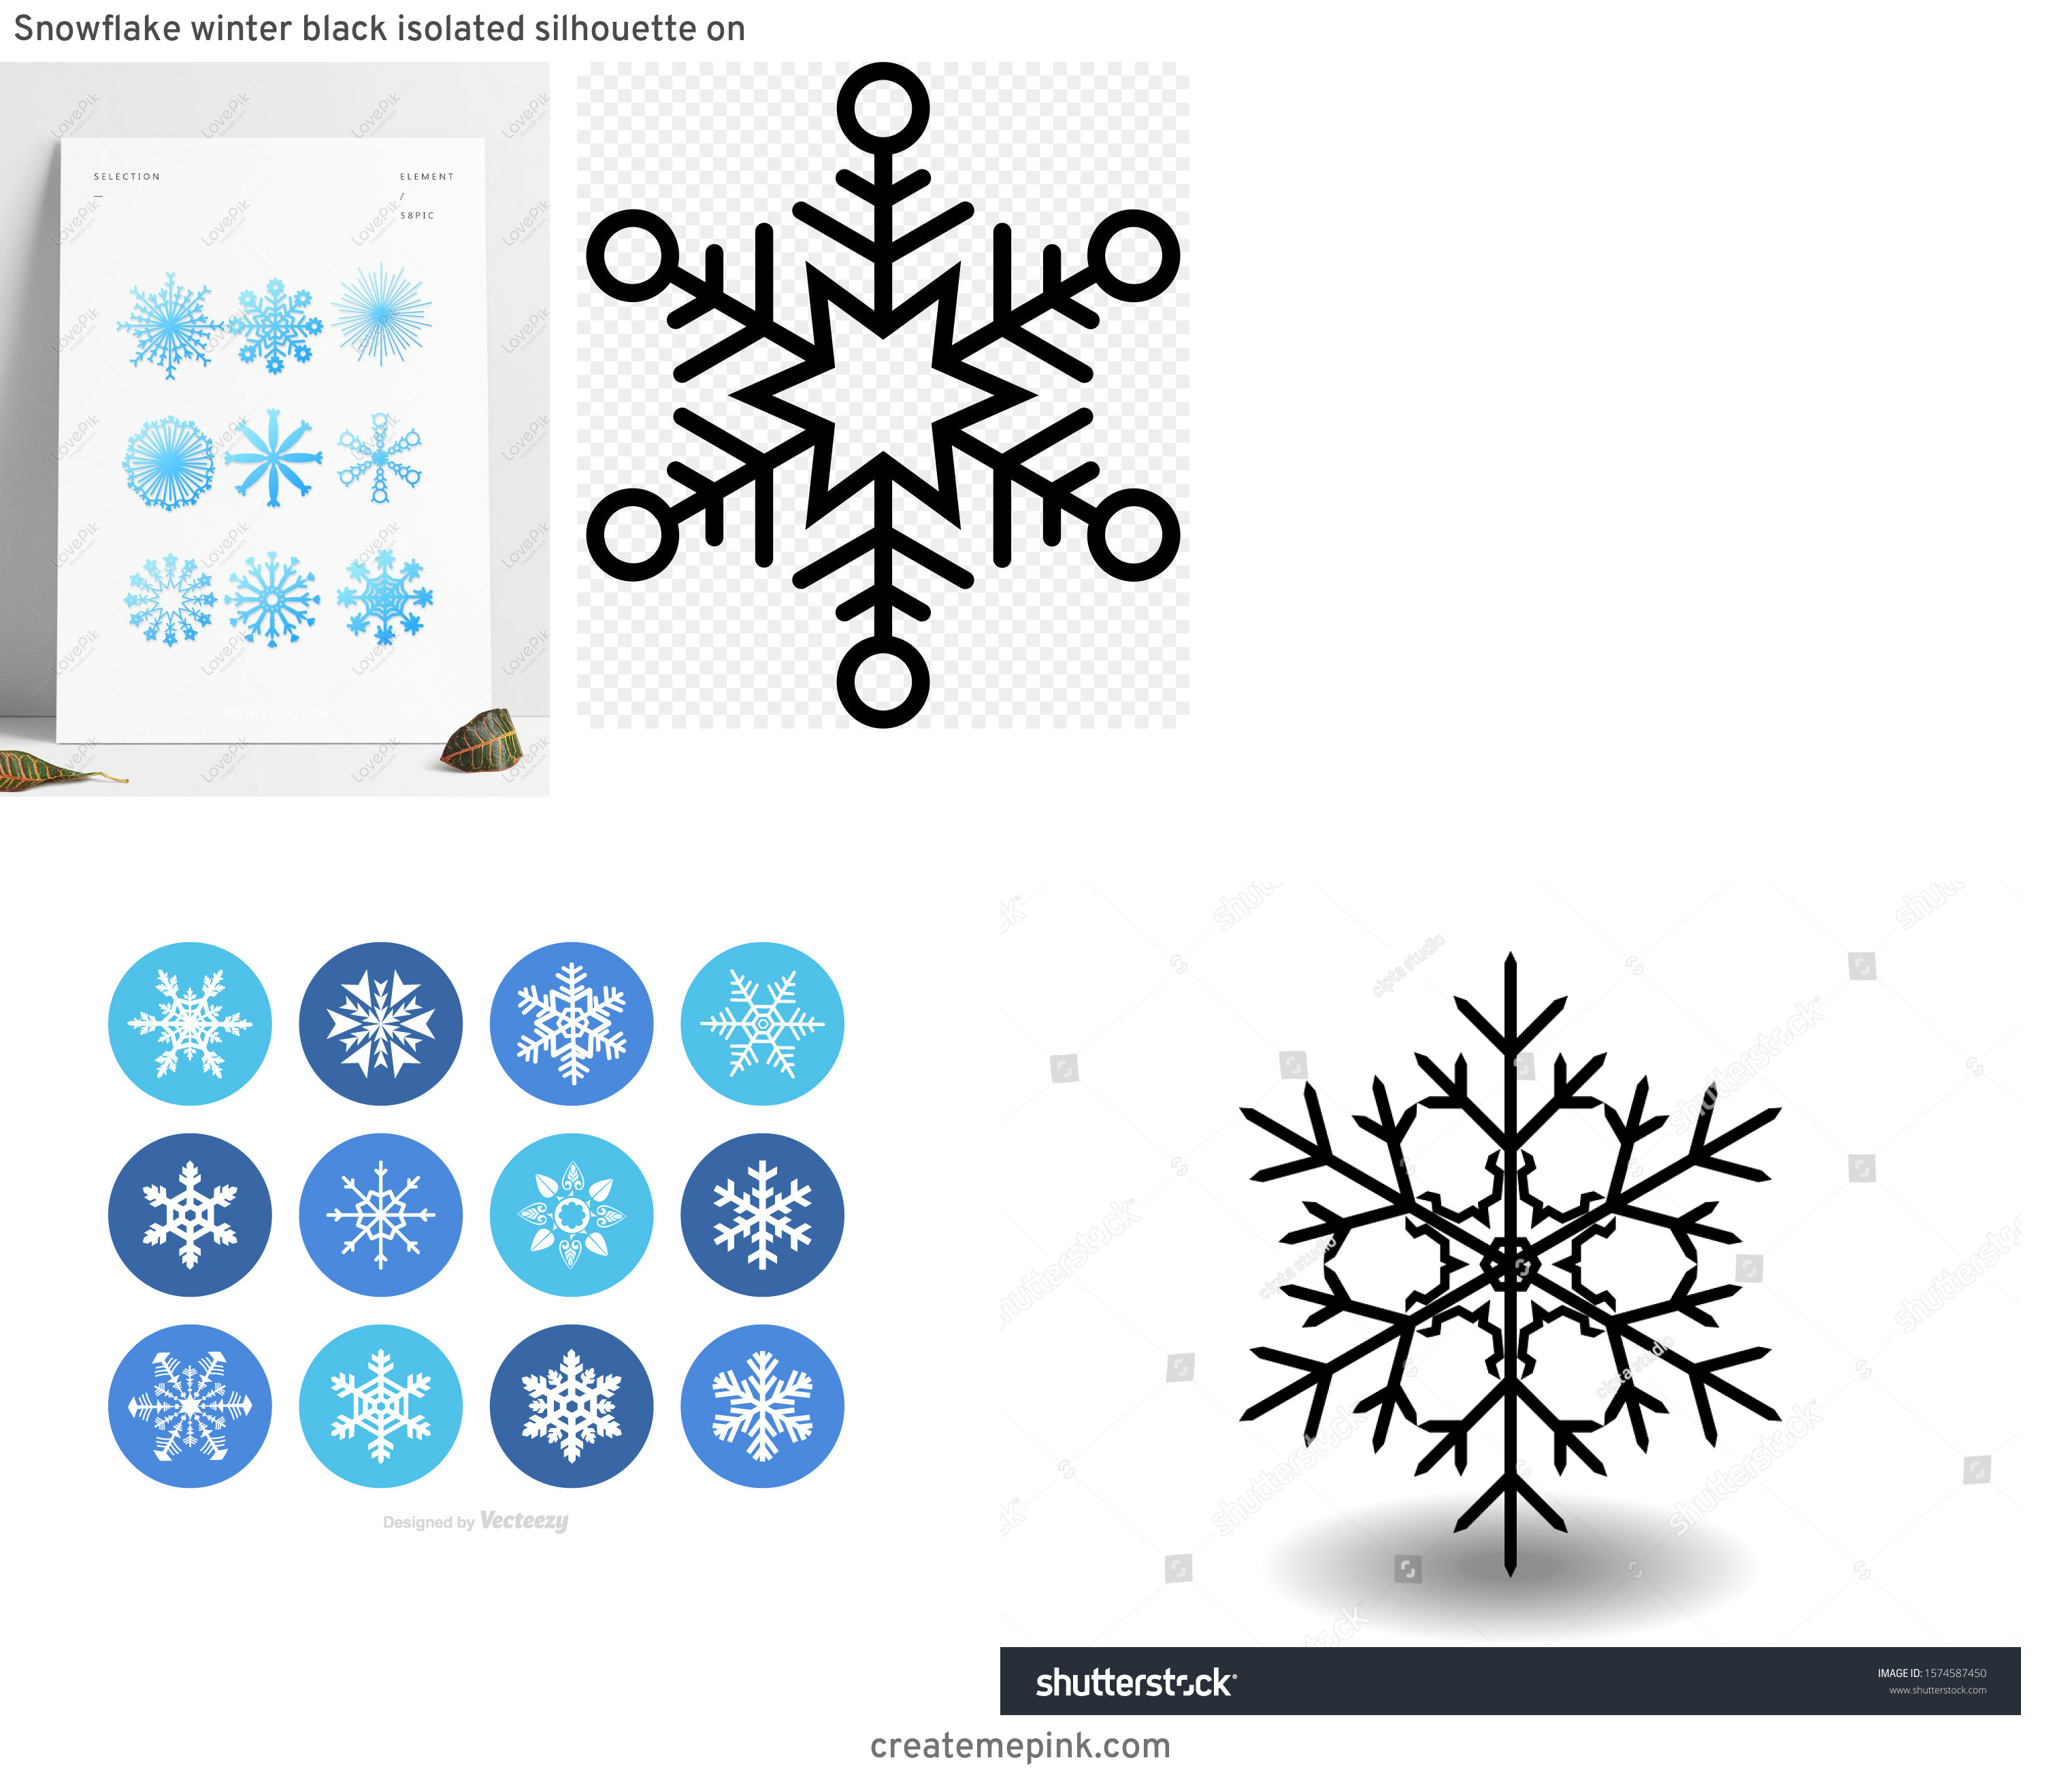 Free Vector Snow Flakes: Snowflake Winter Black Isolated Silhouette On